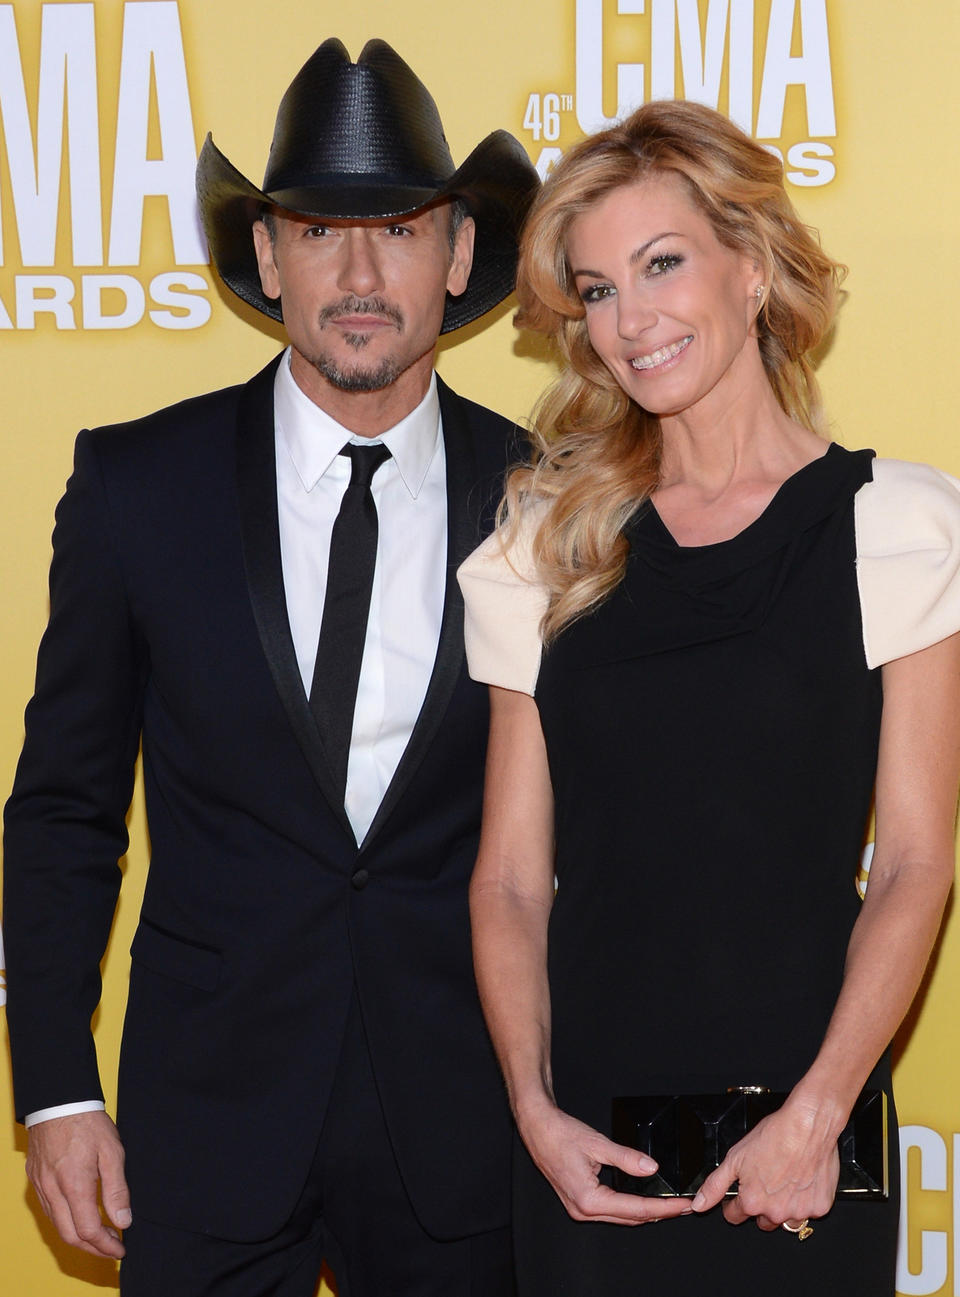 Country music couple Tim McGraw and Faith Hill are once again shooting down rumors of a split.